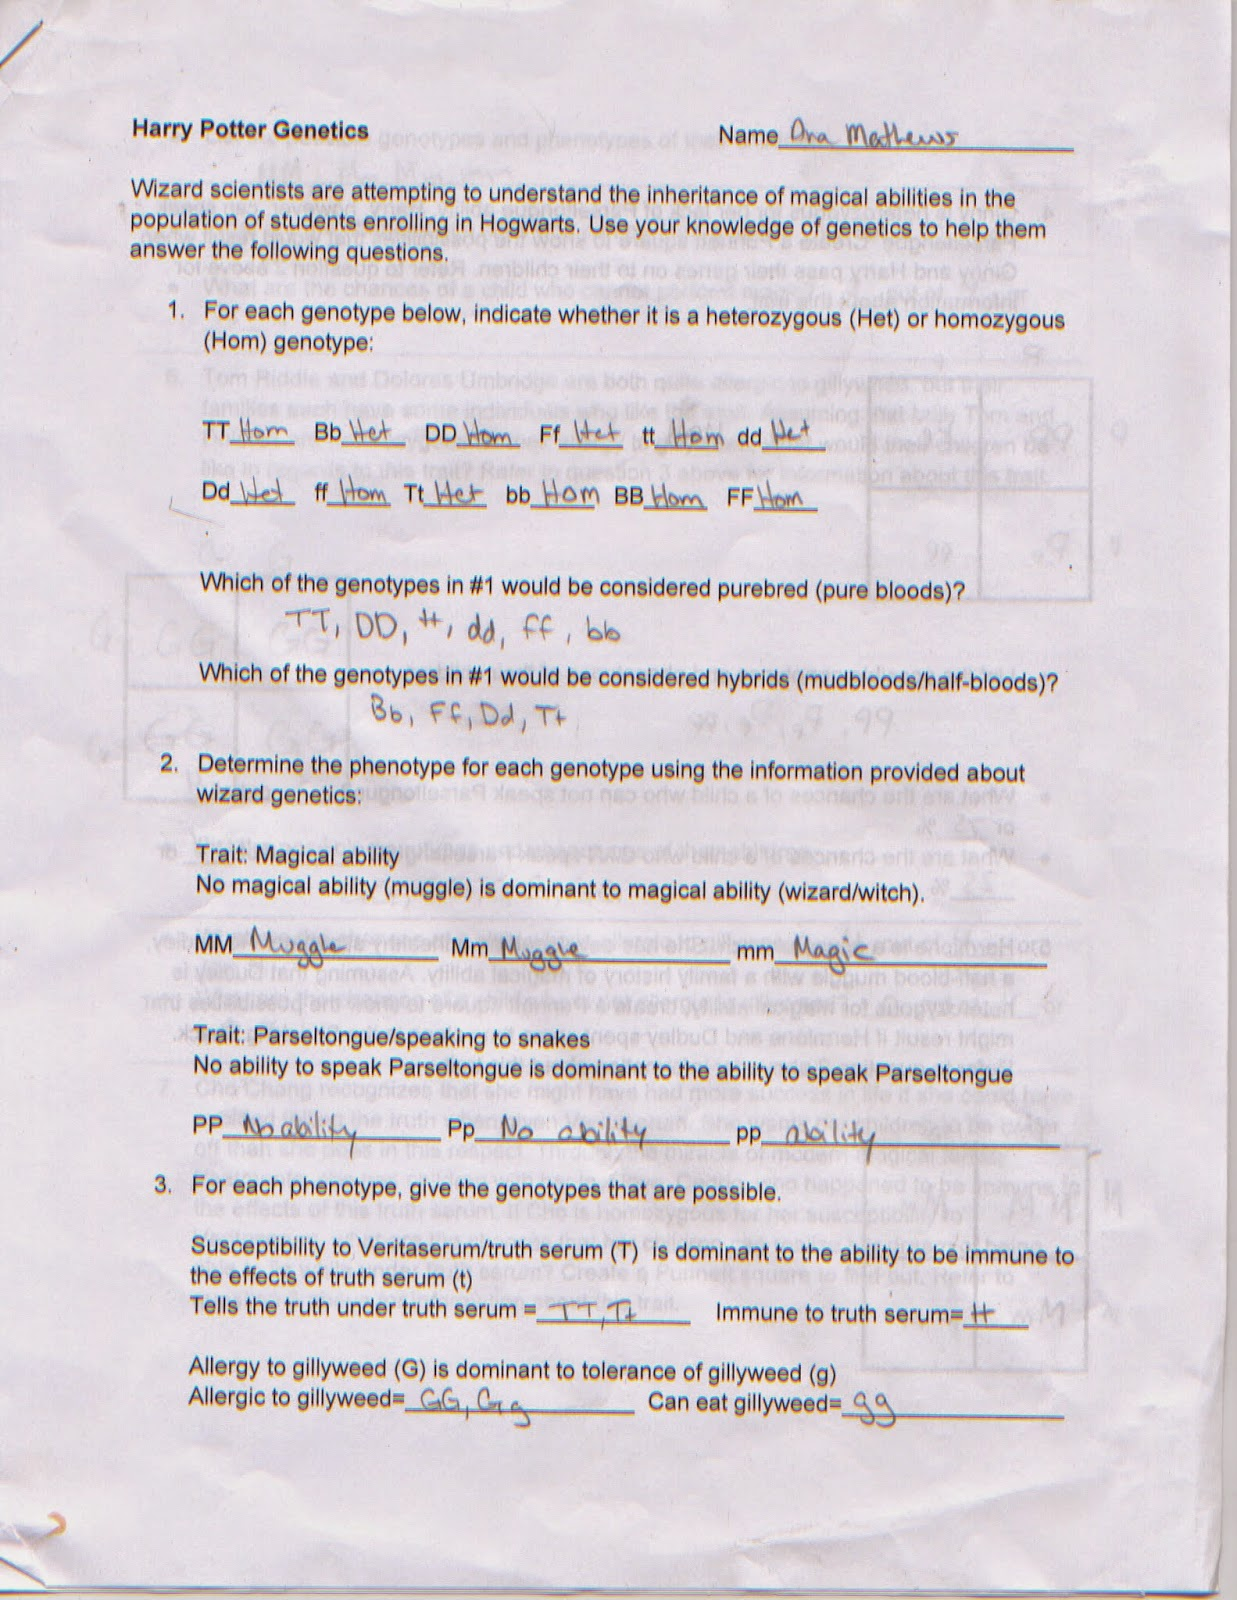 Harry Potter Worksheets English Ks1 together with  likewise 26 Hary Poter Ge ics Workshet Answers  Harry Potter Ge ics  Free further Bio3 0910 Lec6 Ge ics Starter in addition  also  moreover Harry Potter Ge ics Lesson 1 by Next Generation Science Clroom together with Ge ics Worksheet Answers   Winonarasheed further  additionally Bio3 0910 Lec6 Ge ics Starter furthermore Harry Potter Worksheets Worksheets Harry Potter And The Philosophers as well KS2   Harry Potter series by J K  Rowling   Teachit Primary in addition Ge ics in Harry Potter's World Lesson 1   ppt download additionally Introduction to Ge ics Worksheet Elegant Chapter 11 Introduction besides Biology  It Grows On You  Harry Potter Ge ics as well . on harry potter genetics worksheet answers